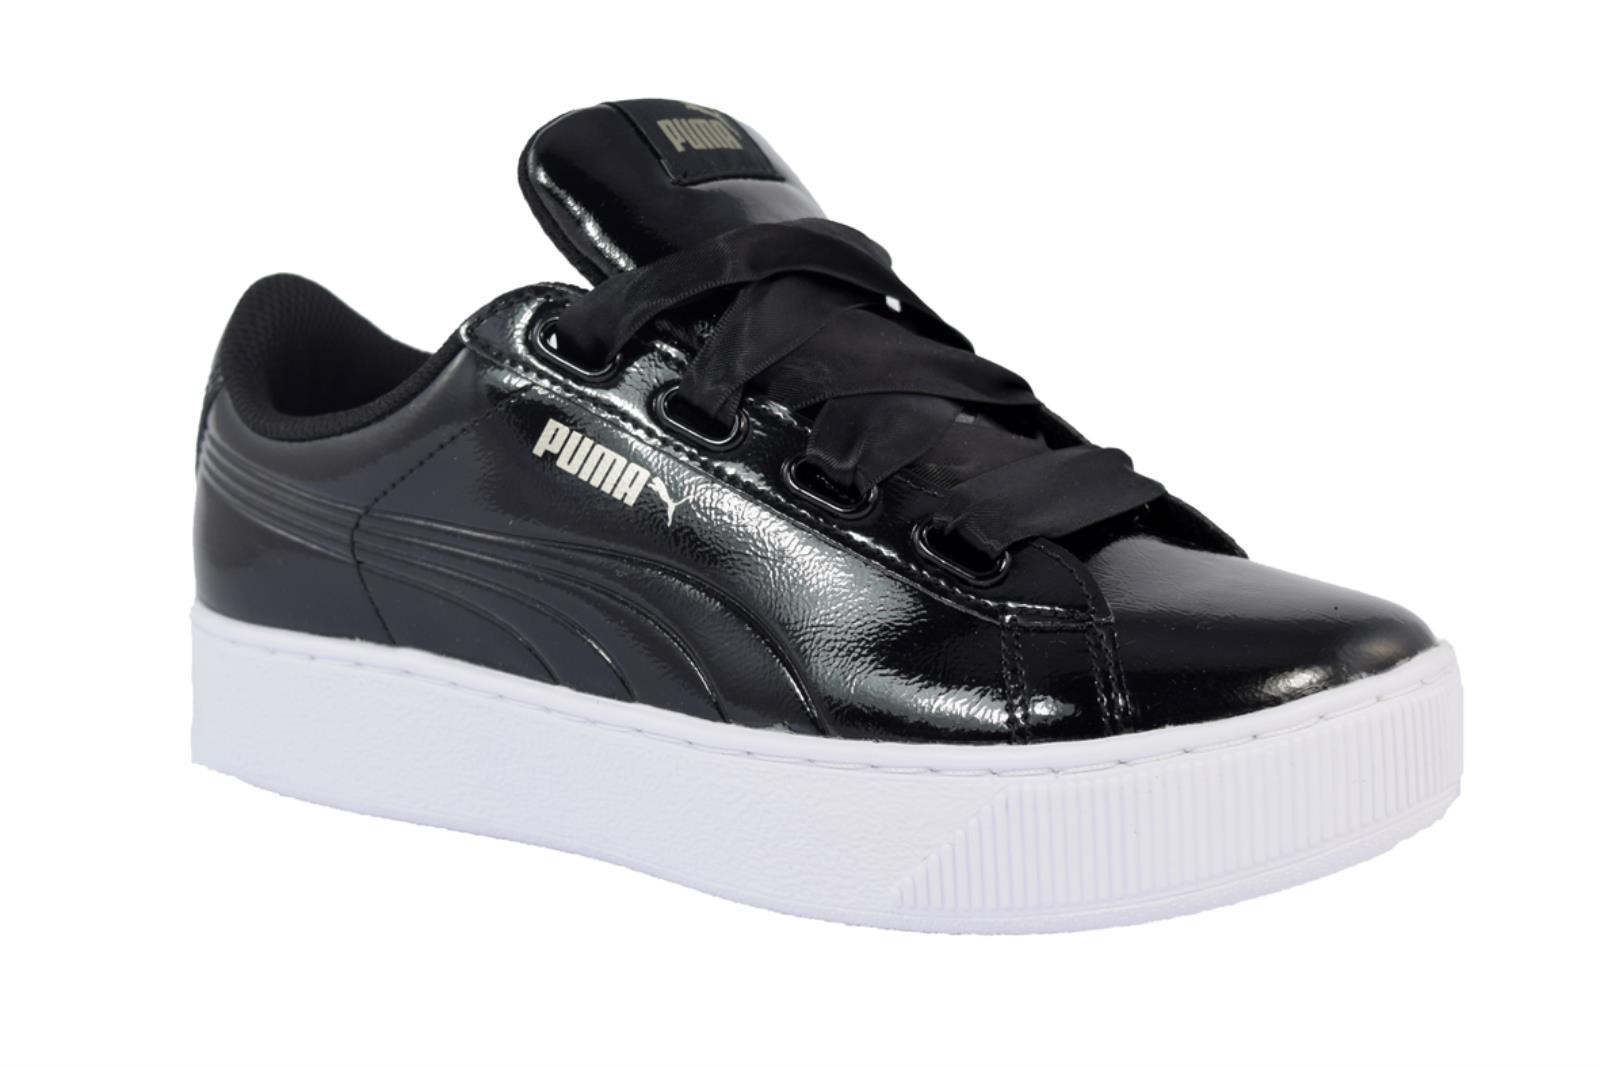 SNEAKERS PUMA VIKKY PLATFORM RIBBON 366419 01 DA DONNA IN VERNICE DI COLORE NERO